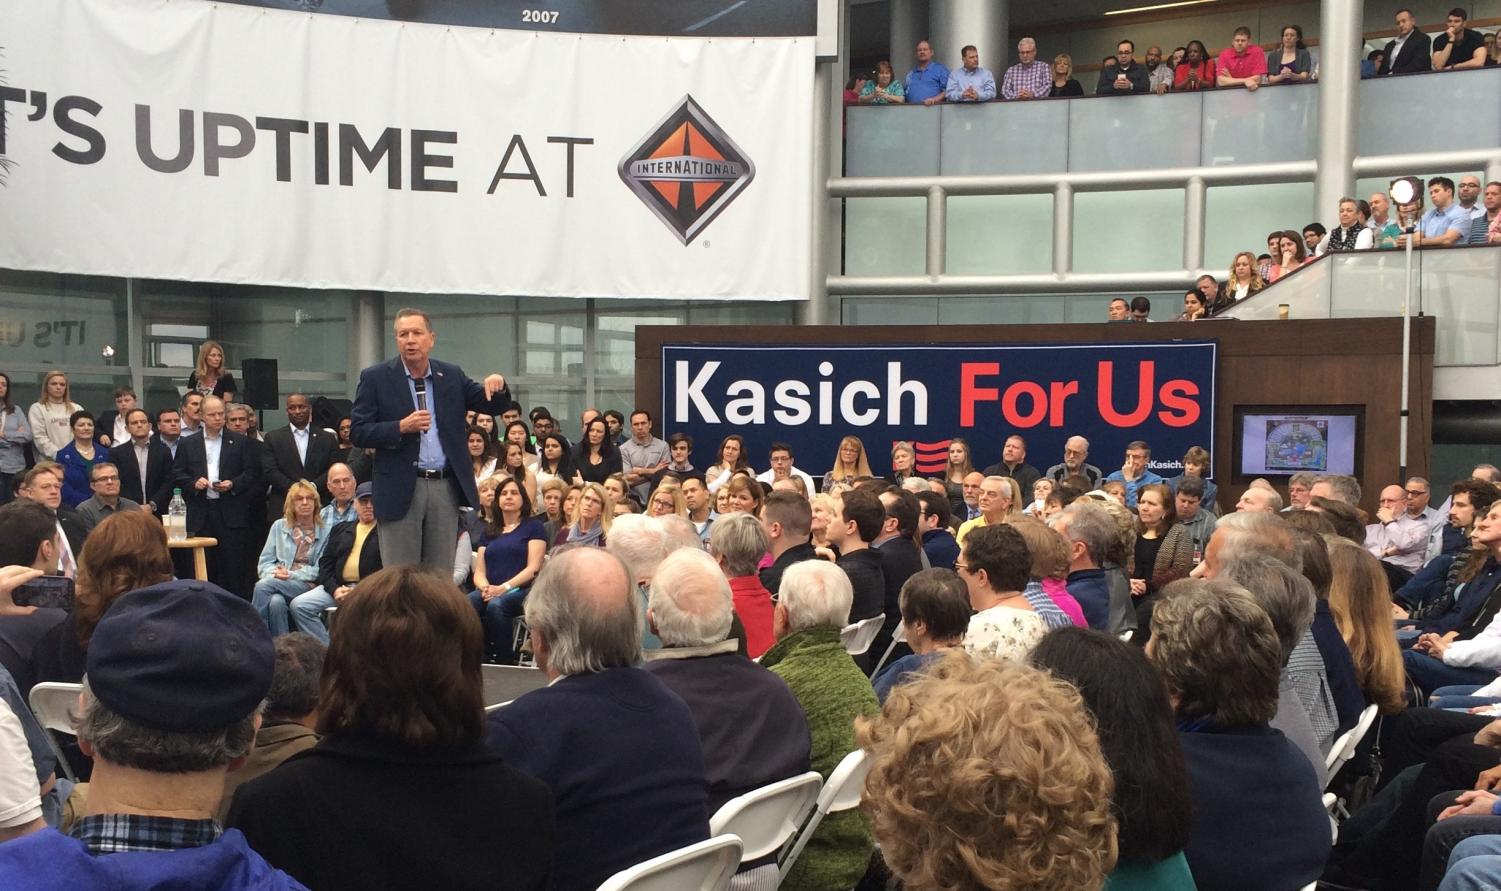 Mr. Wilbur frequently encourages his students to examine politics outside the classroom, such as attending political rallies. On Wednesday, March 9, 2016, Ohio Governor John Kasich spoke in Lisle, Ill. about his campaign for the presidency.